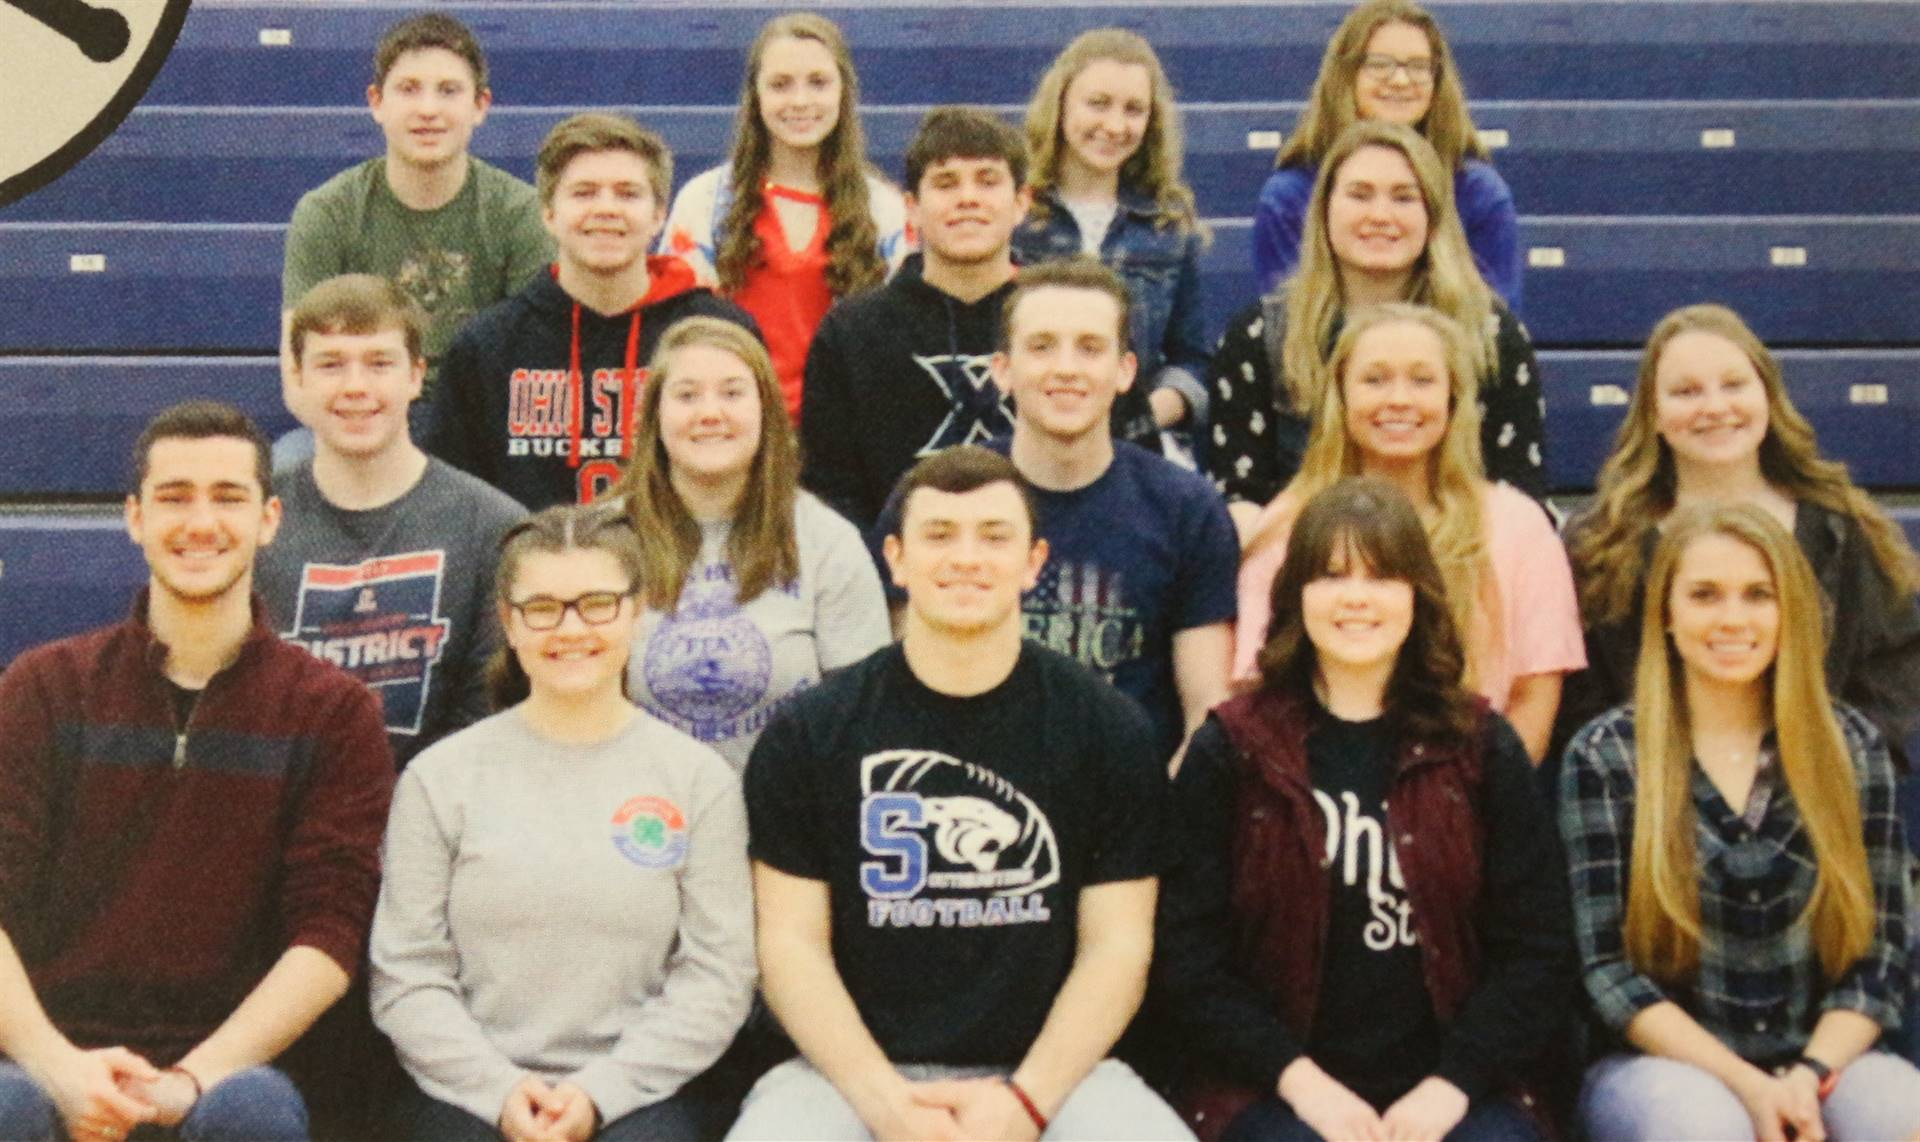 Student Council 2018